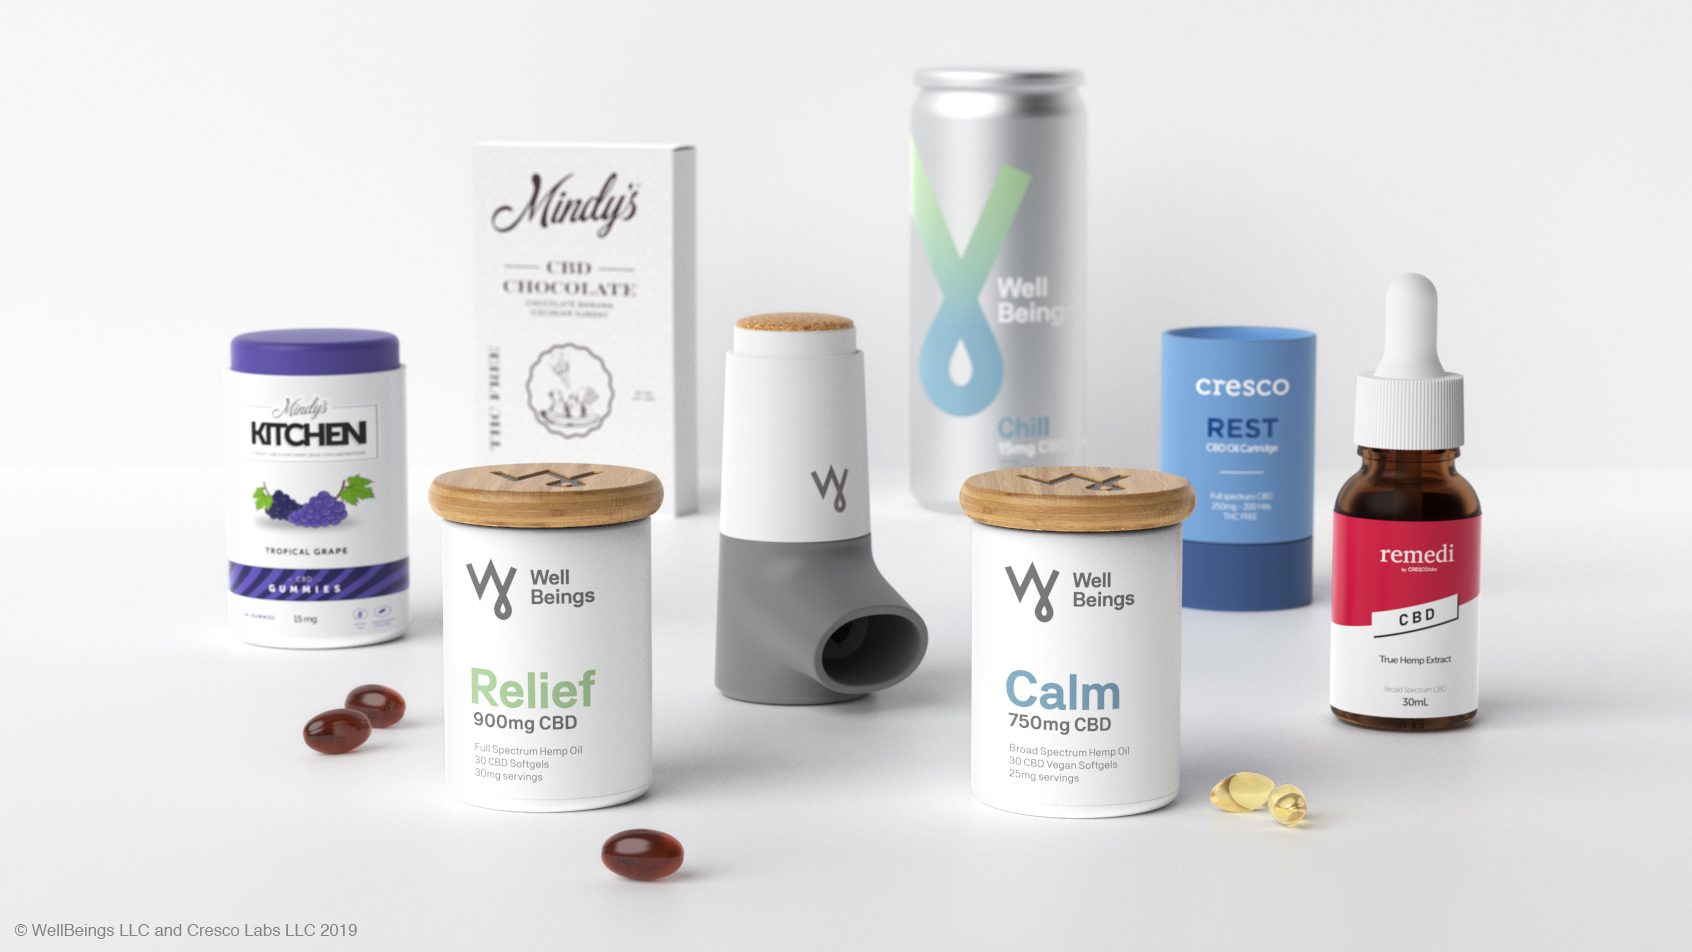 Cresco Labs Launches Hemp CBD Subsidiary -- Expands Reach of House of Brands  | Business Wire